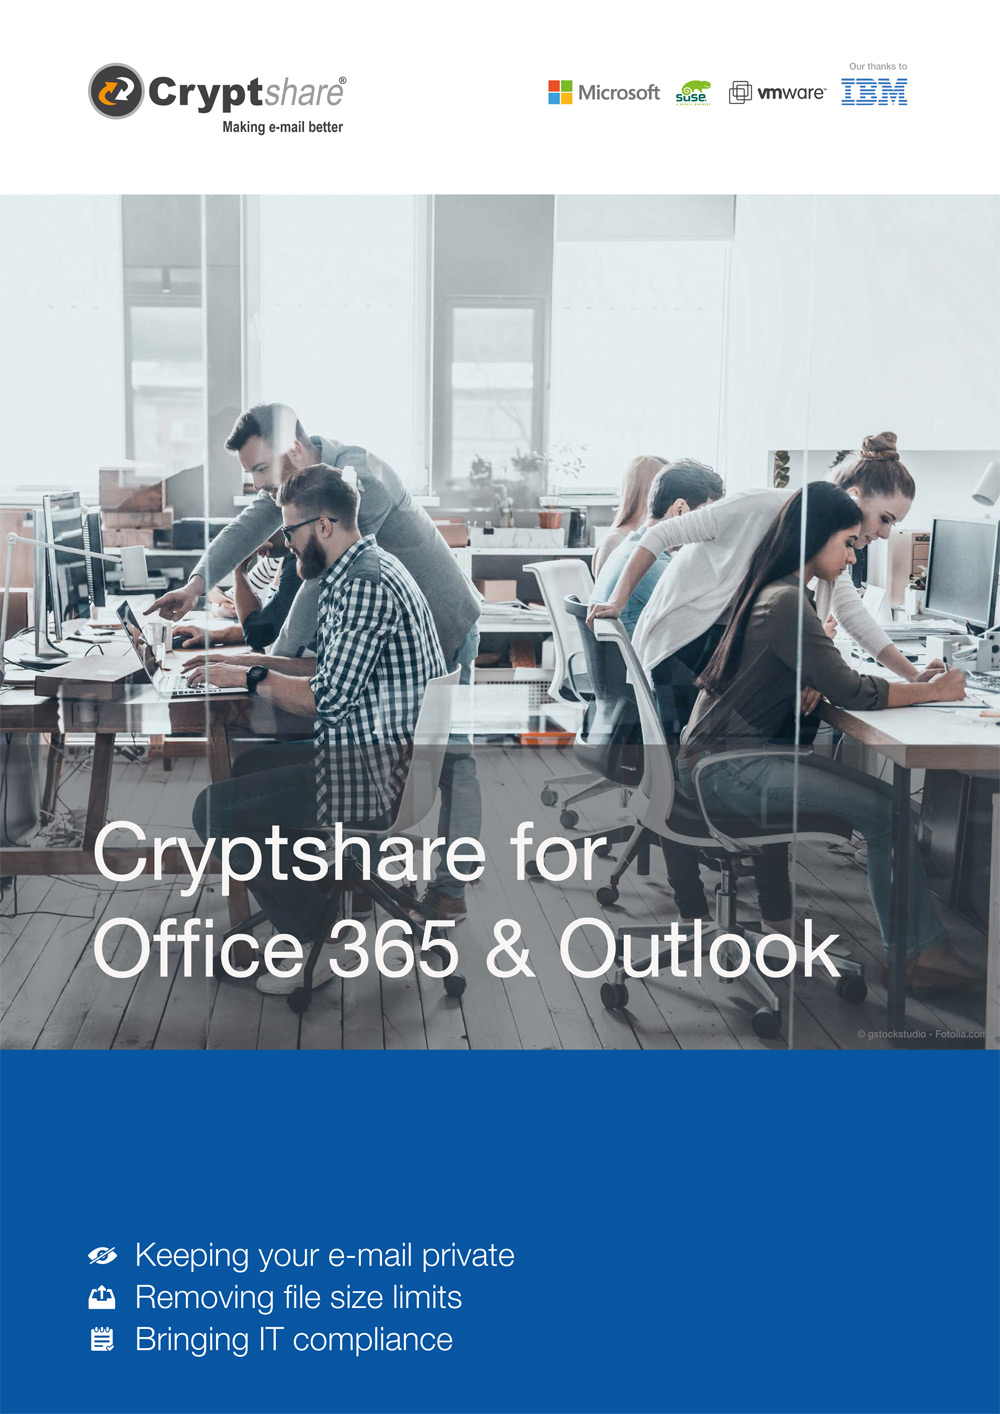 Cryptshare-for-Office365-Outlook_Datenblatt_EN-EU